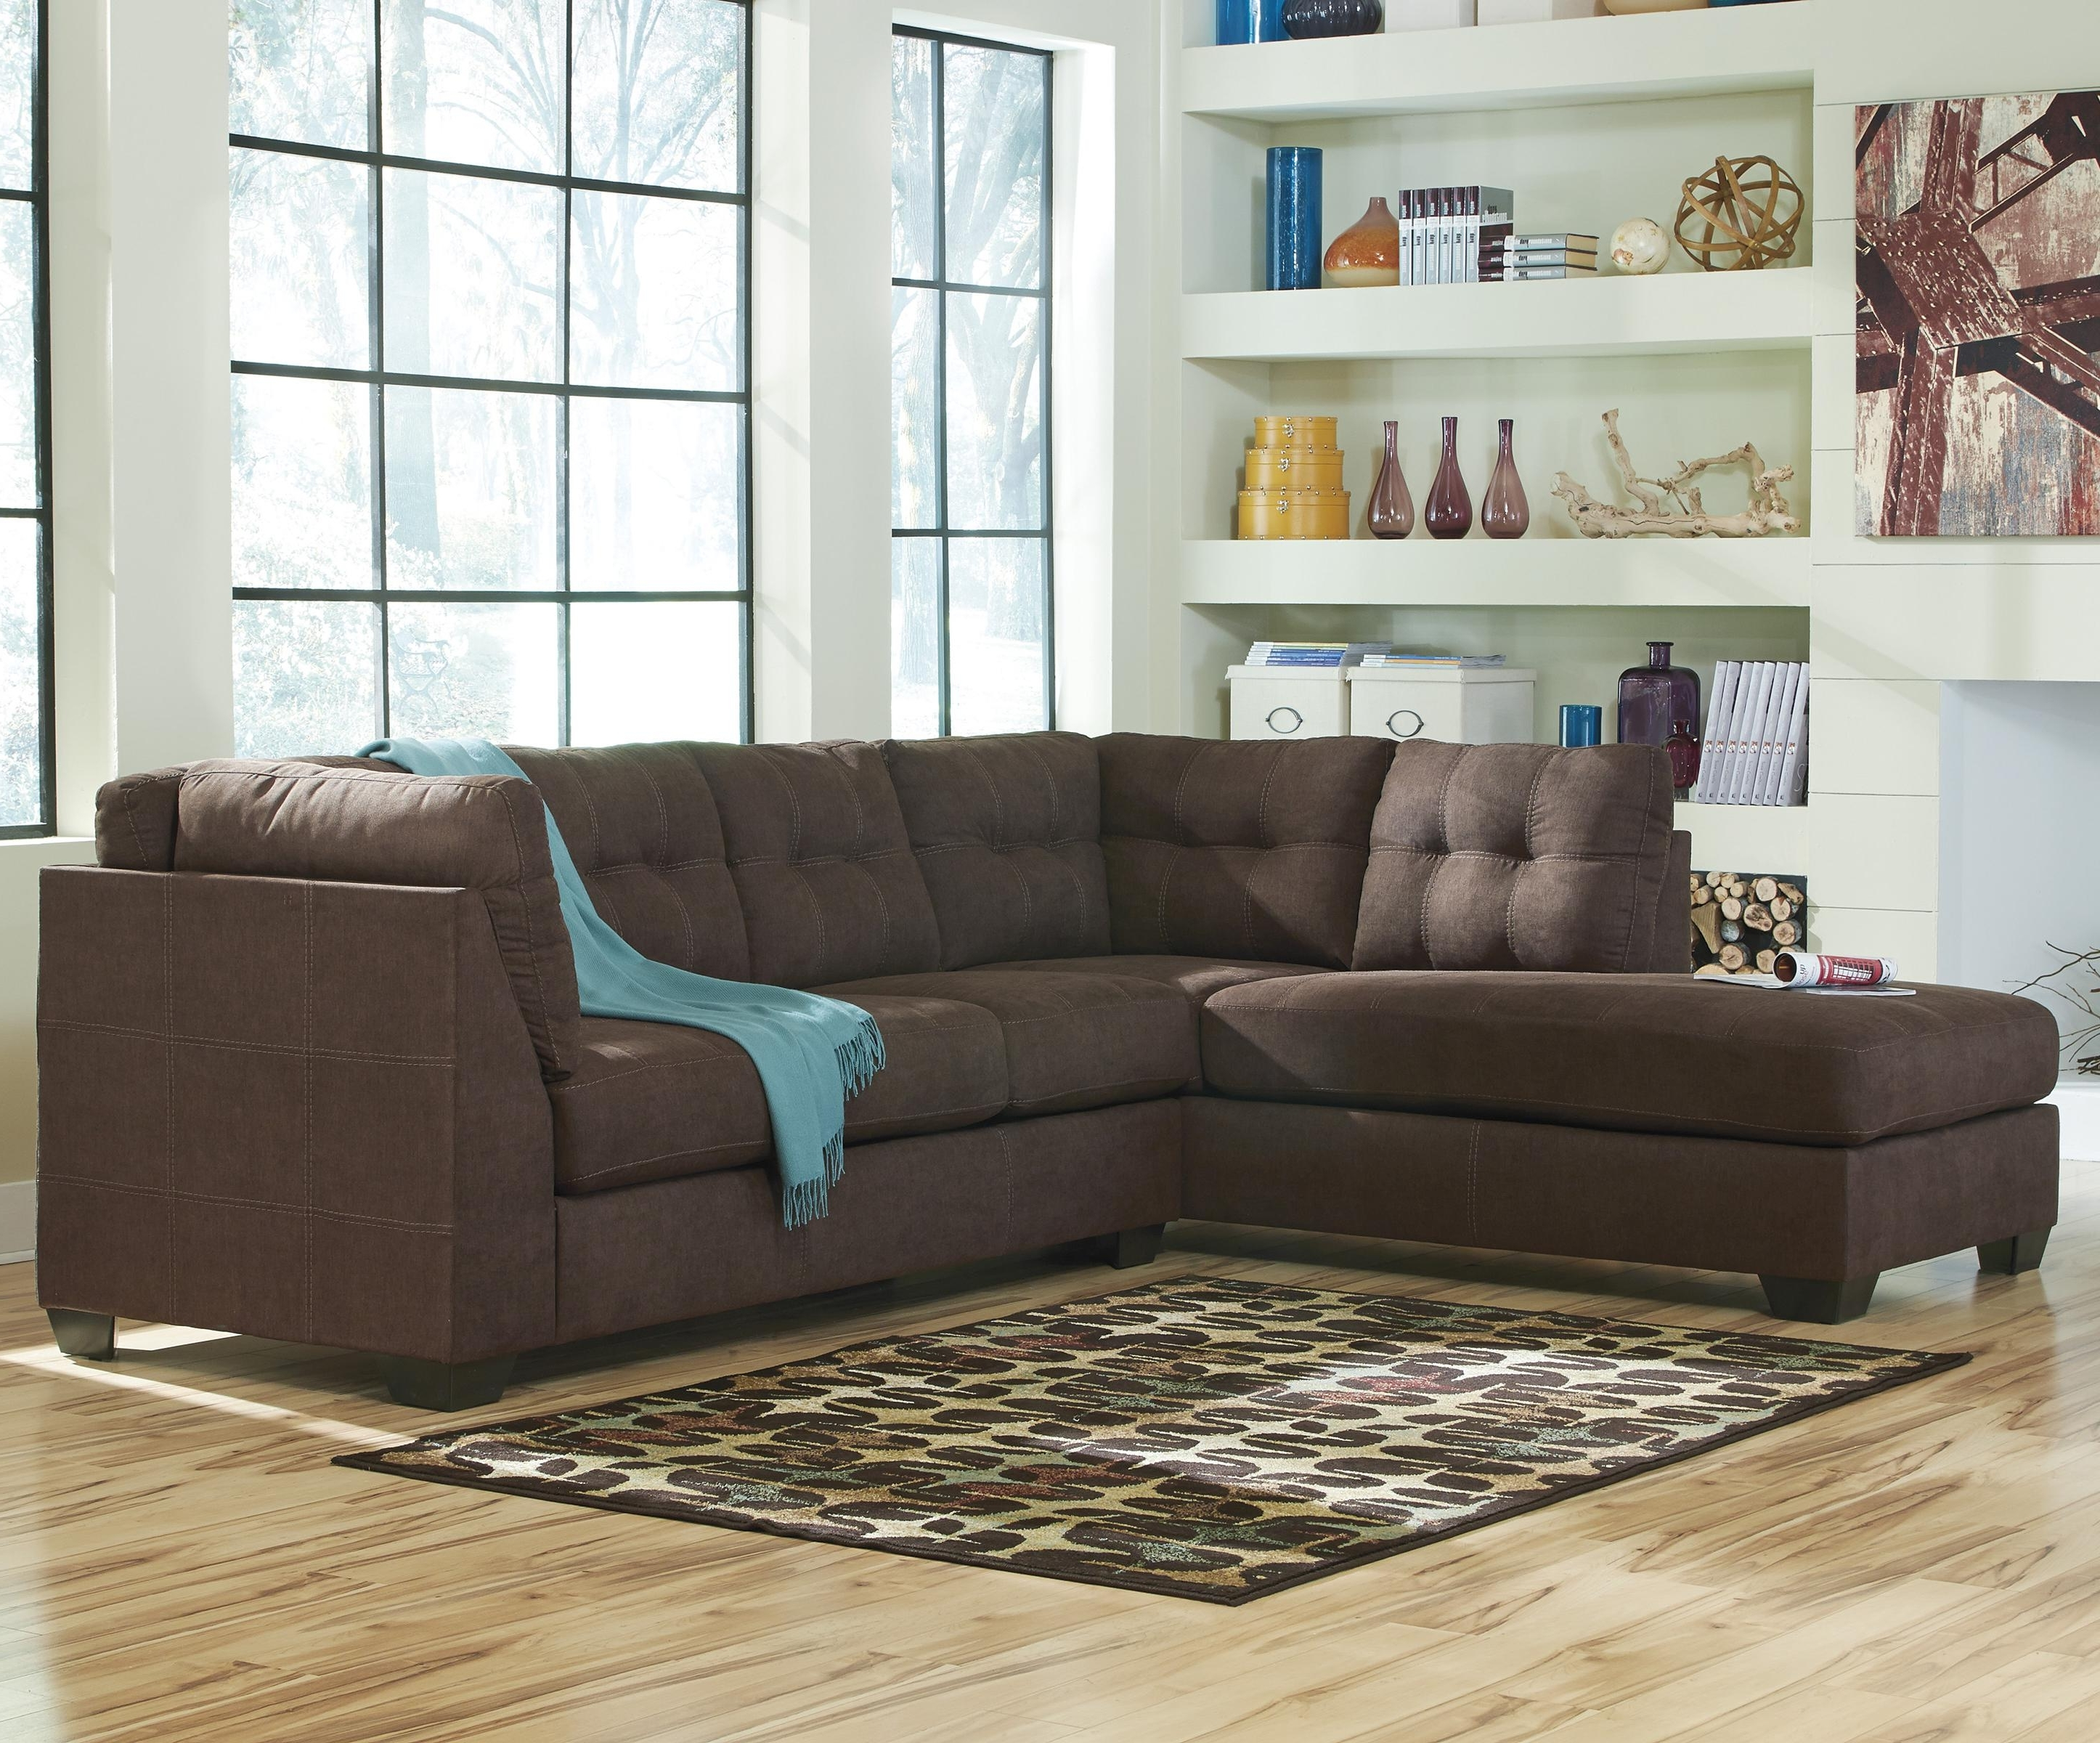 2018 Benchcraft Maier – Walnut 2 Piece Sectional With Left Chaise Intended For Left Chaise Sectionals (View 14 of 15)